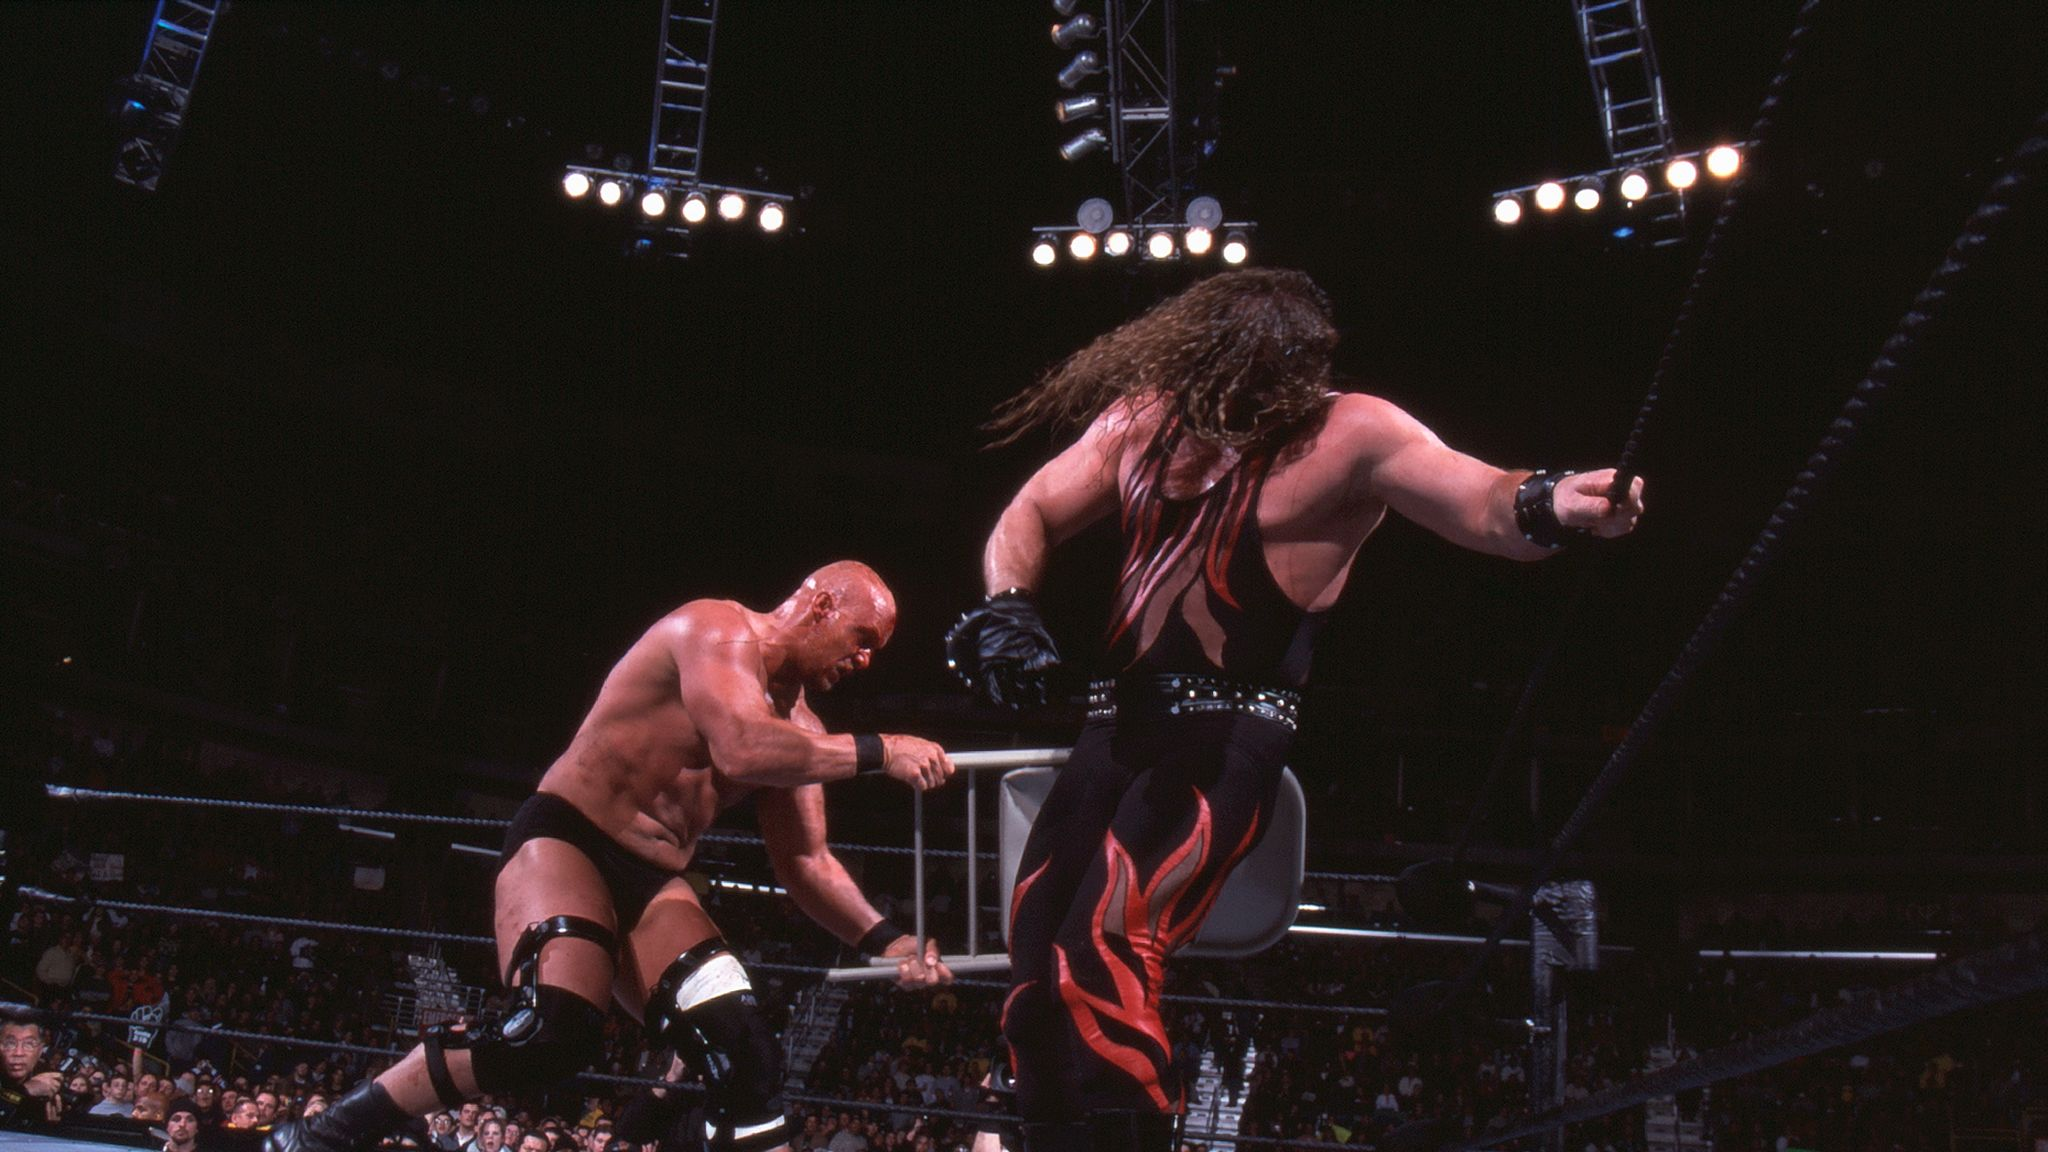 WWE Royal Rumble moments, part 1: Kane's destruction in 2001 features | WWE  News | Sky Sports